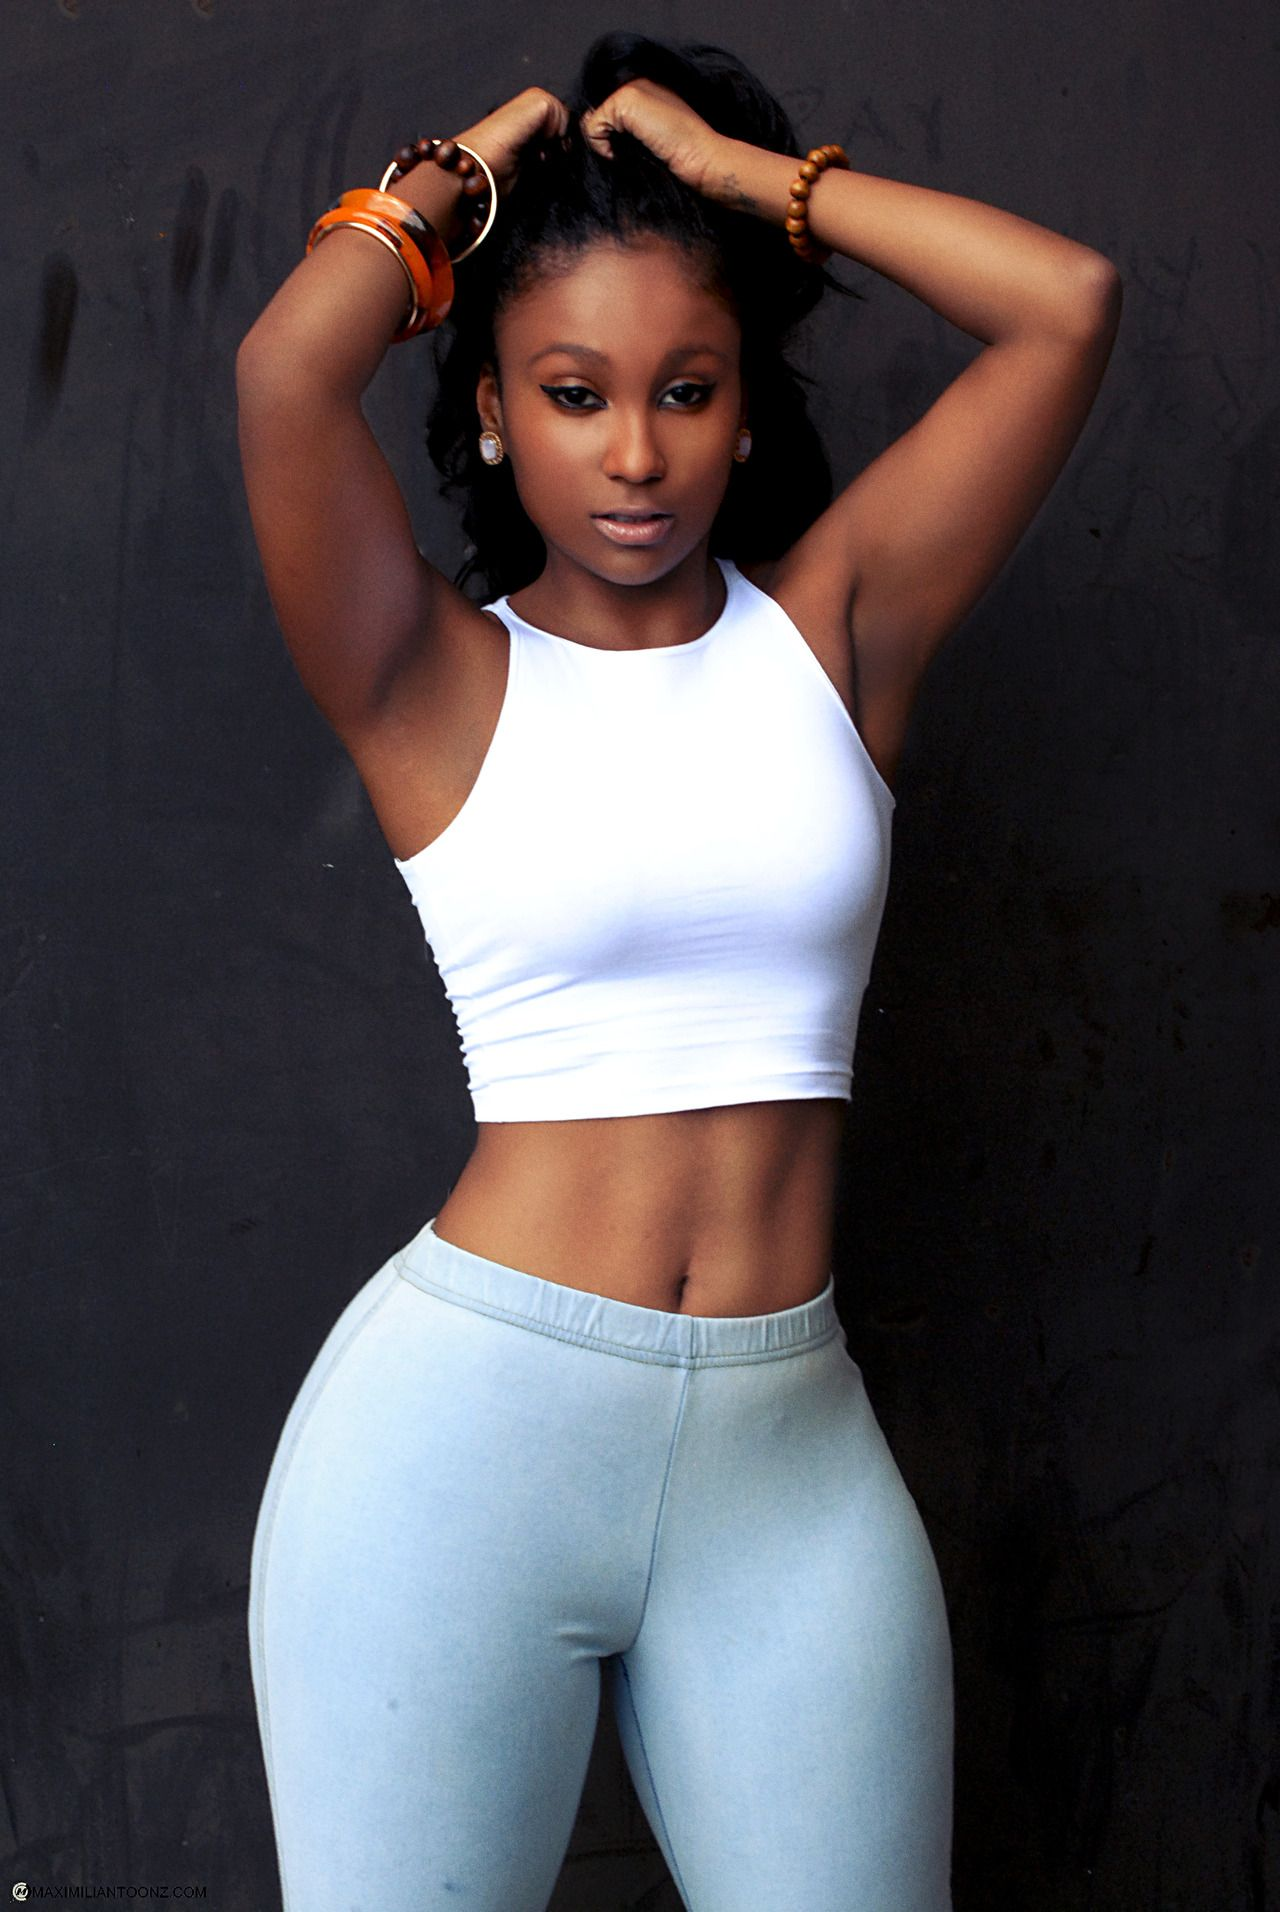 black-women-with-nice-bodies-pictures